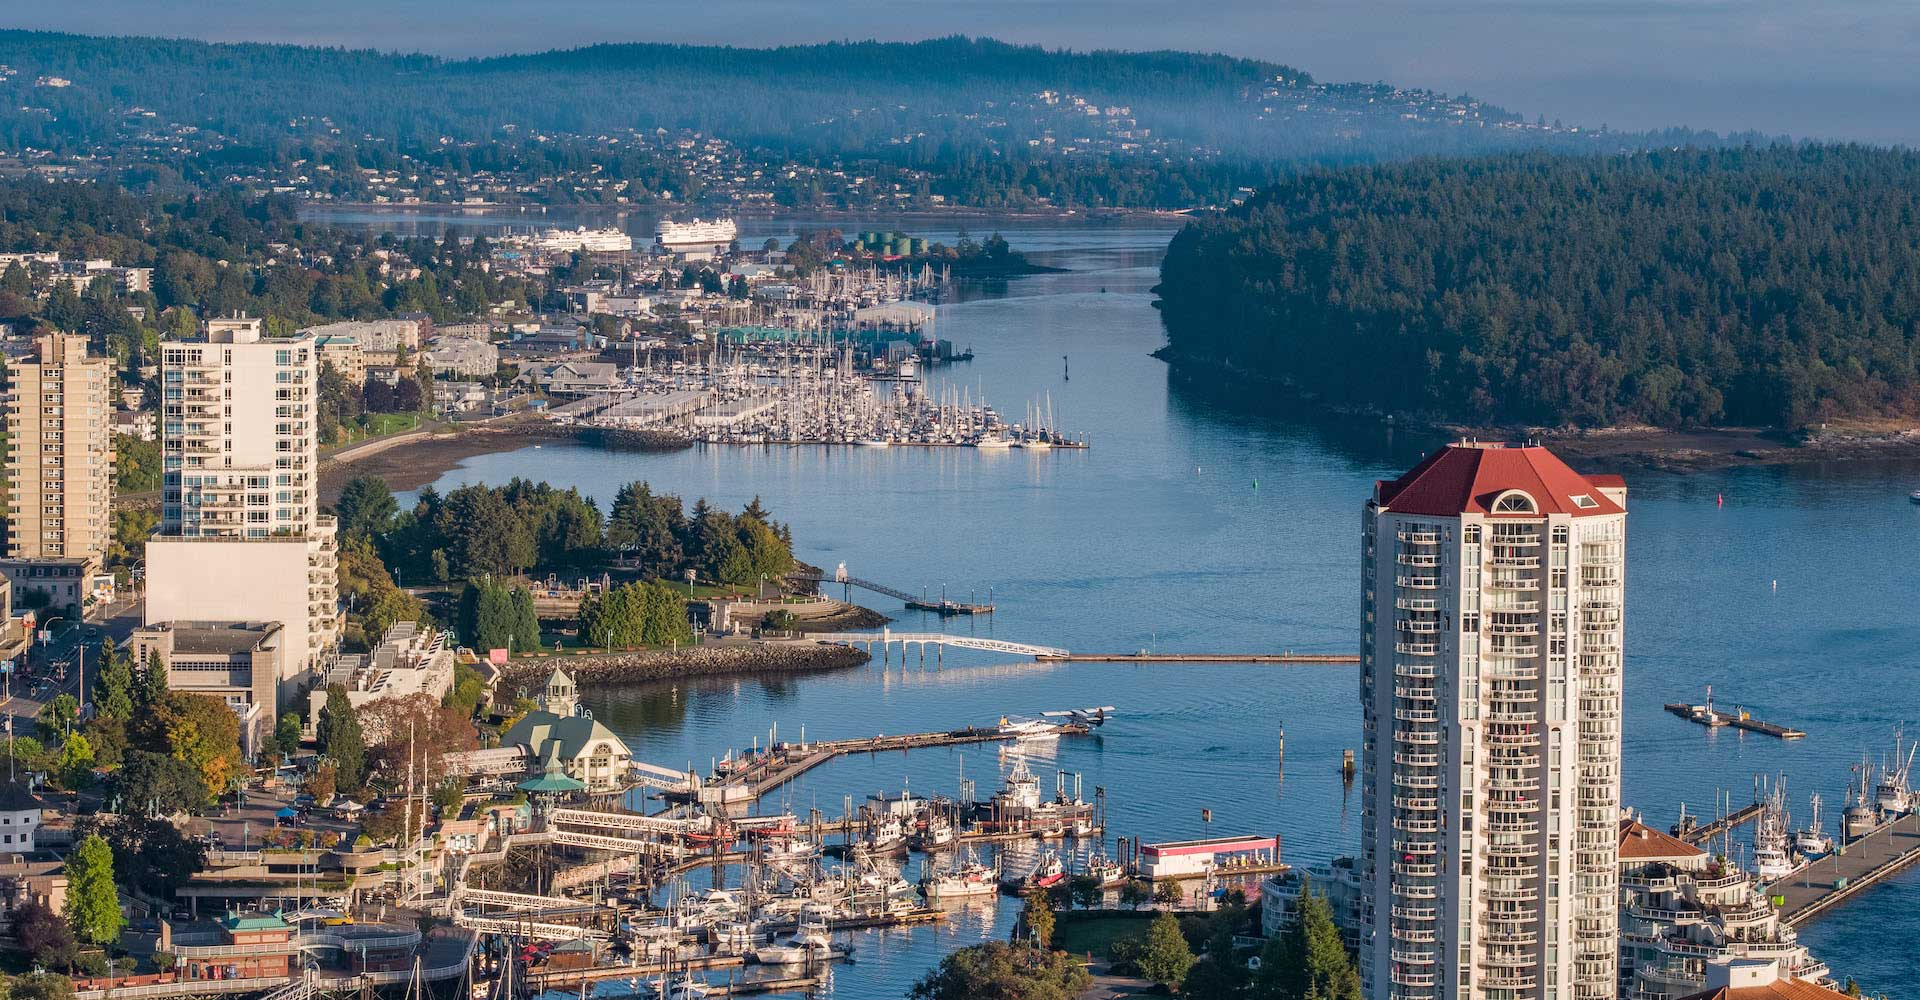 Ariel View of the Nanaimo Harbour and surrounding area.